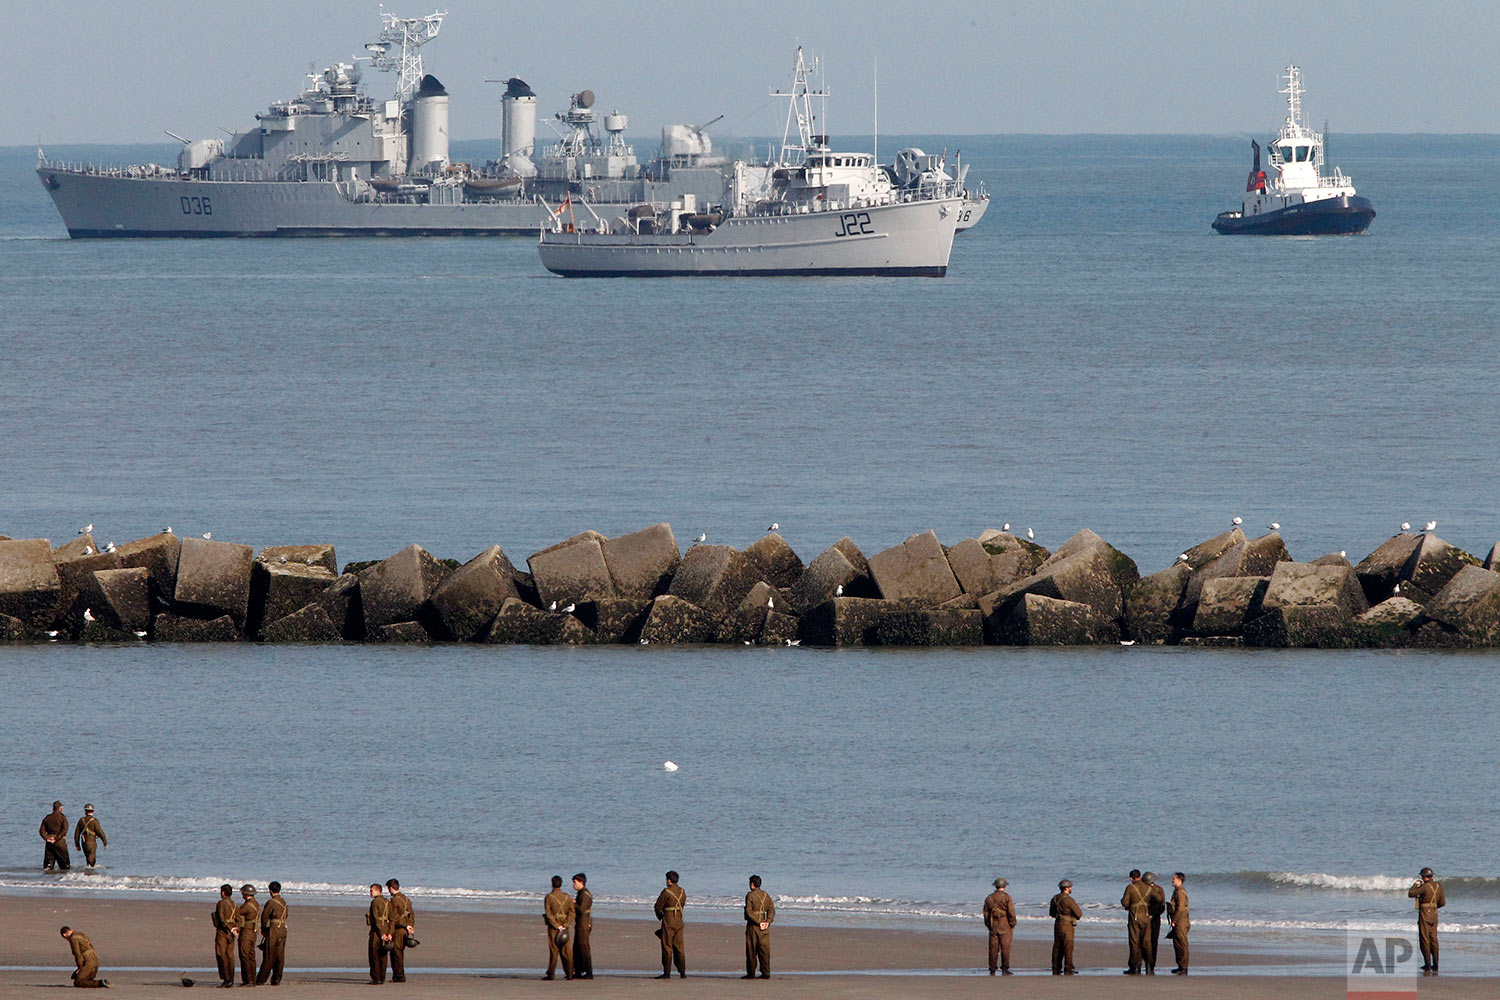 """Actors wait on the beach before filming a scene for the film, """"Dunkirk,"""" in Dunkirk, northern France, Thursday, May 26, 2016. The film, directed by Christopher Nolan, tells the story of the Dunkirk evacuation. (AP Photo/Michel Spingler)"""